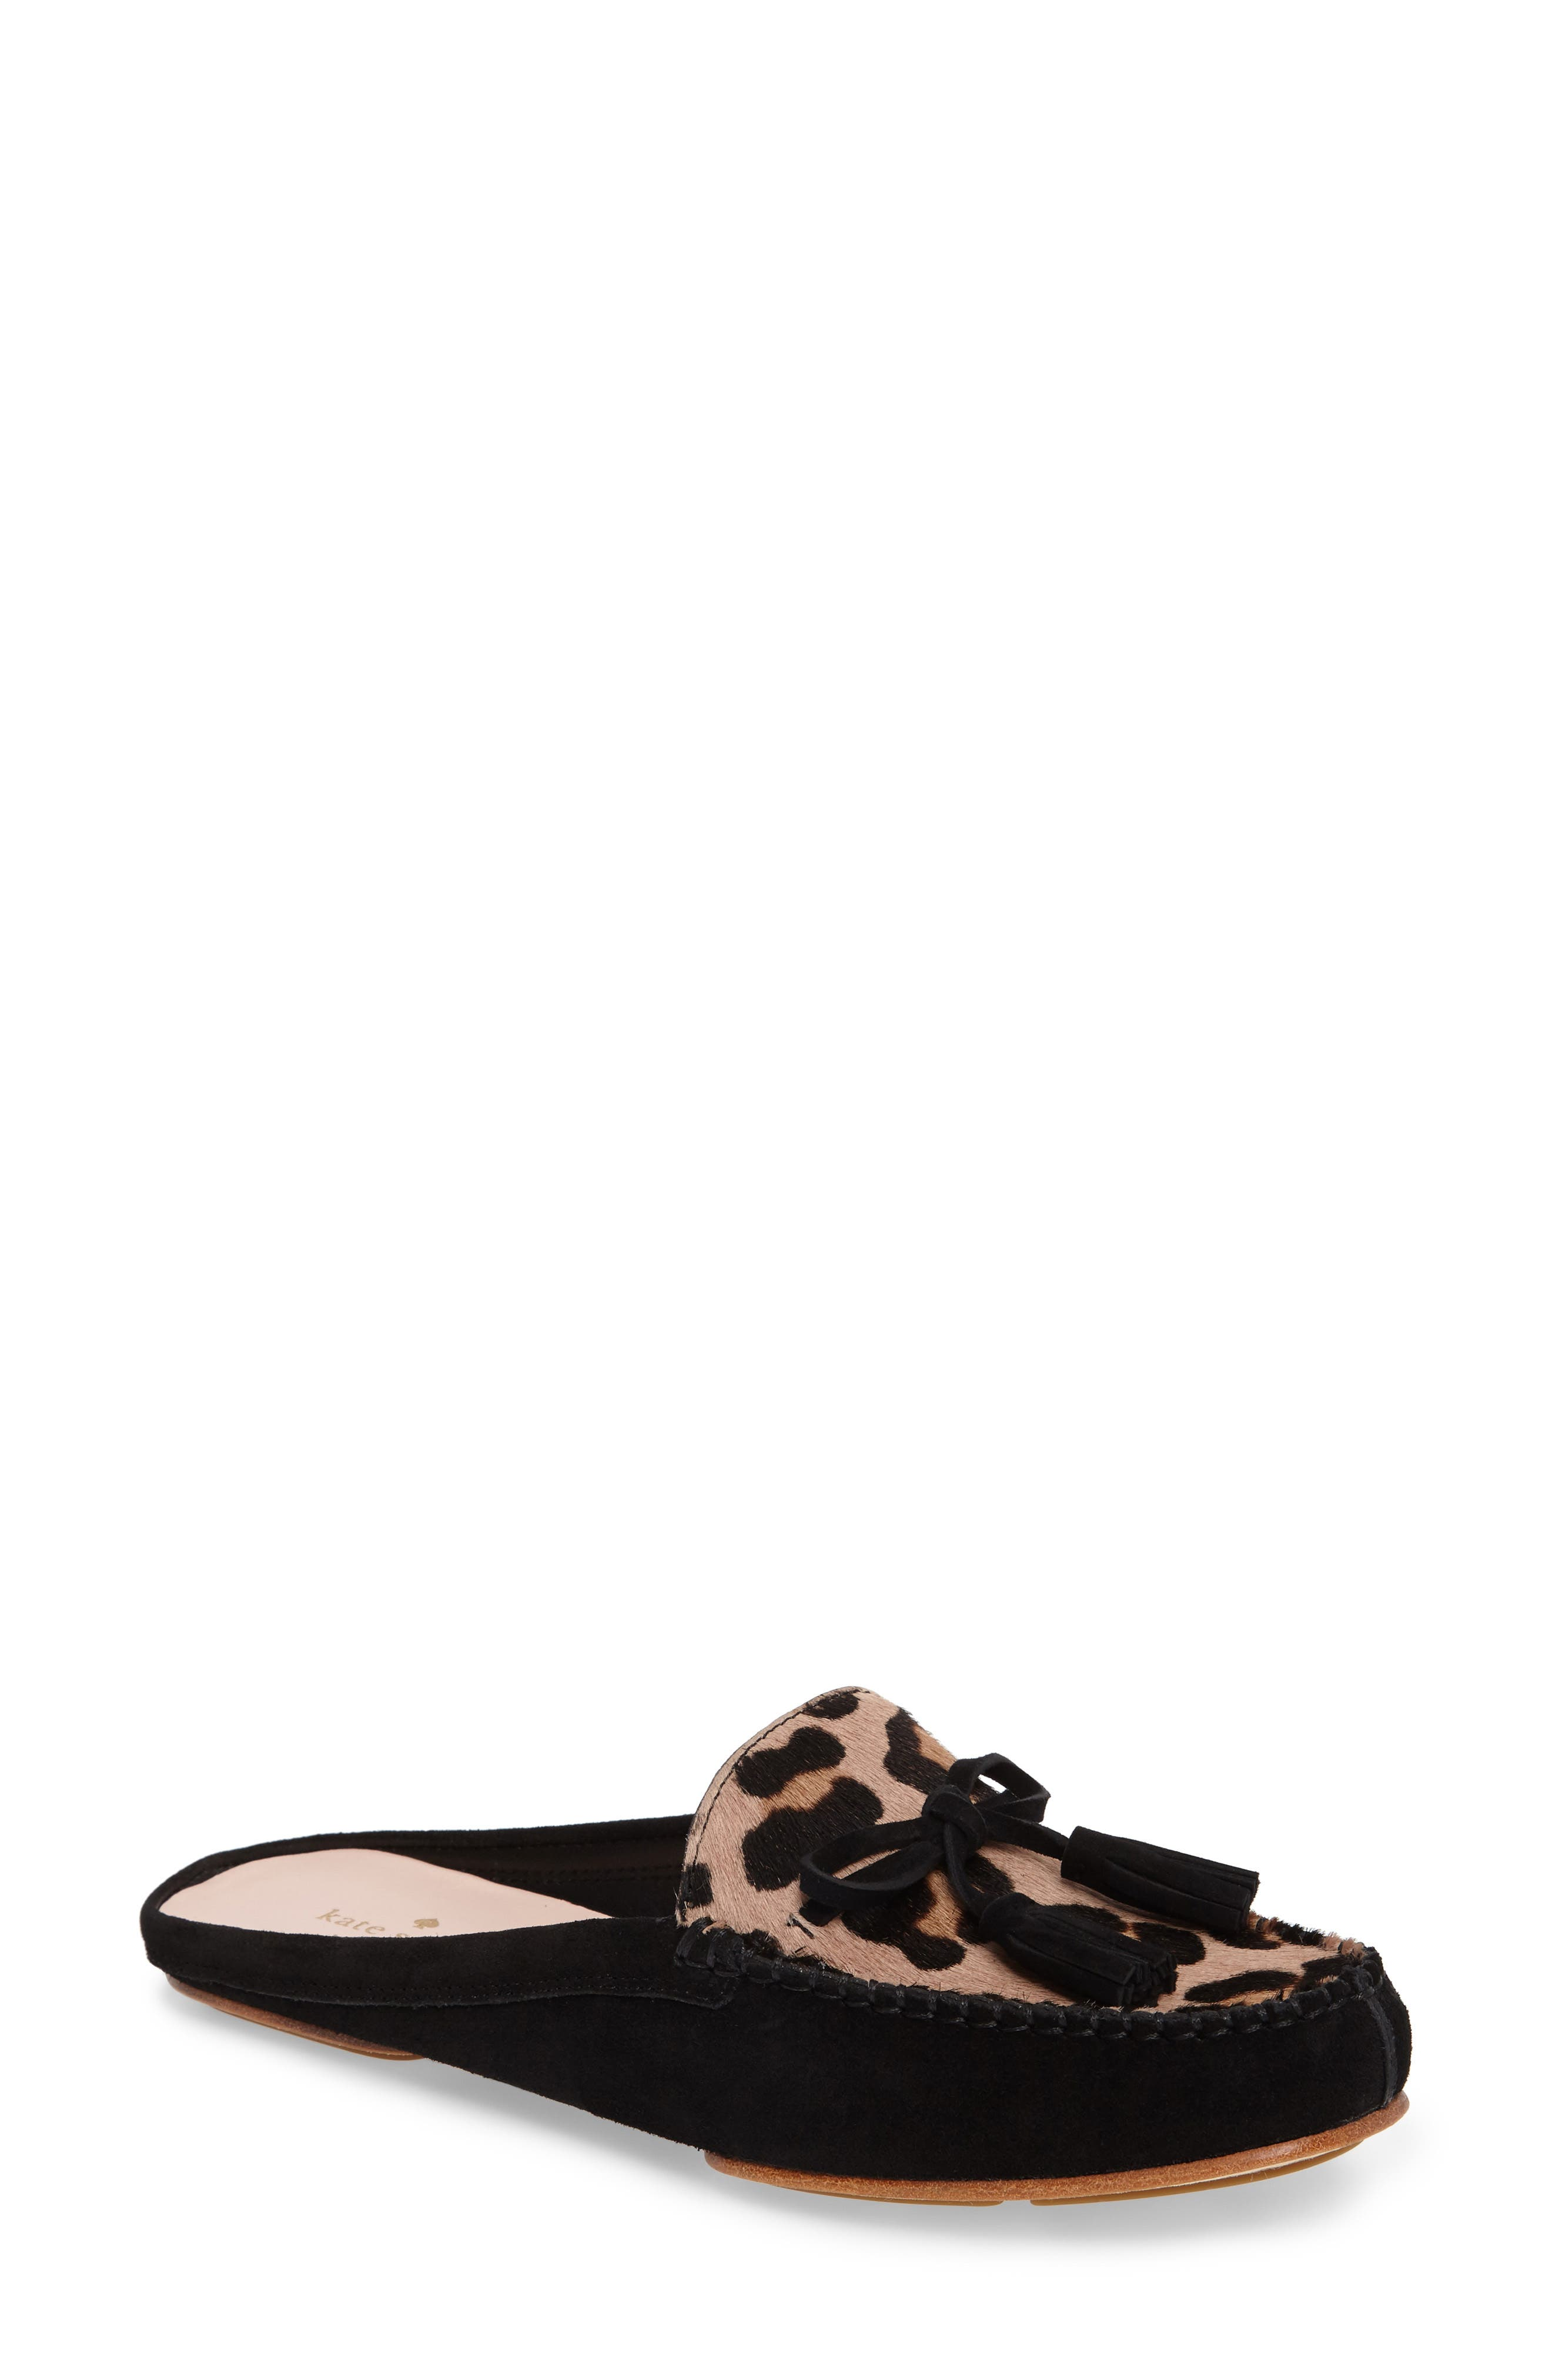 matilda loafer mule,                             Main thumbnail 1, color,                             Blush/ Fawn Leopard Black